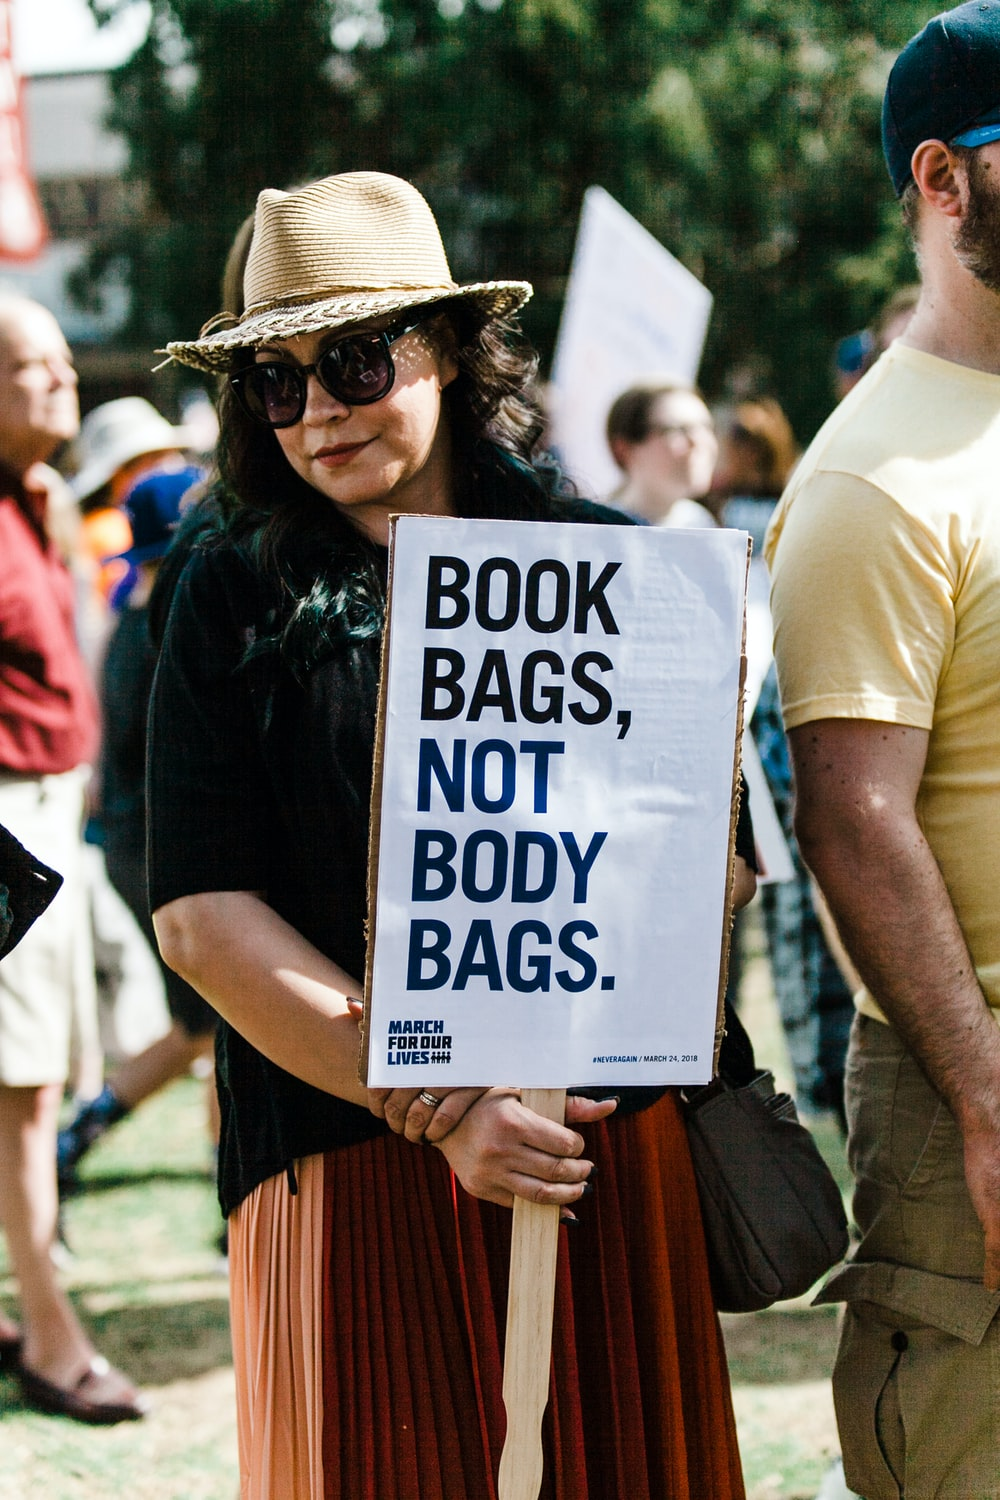 woman holding book bags, not body bags. signboard